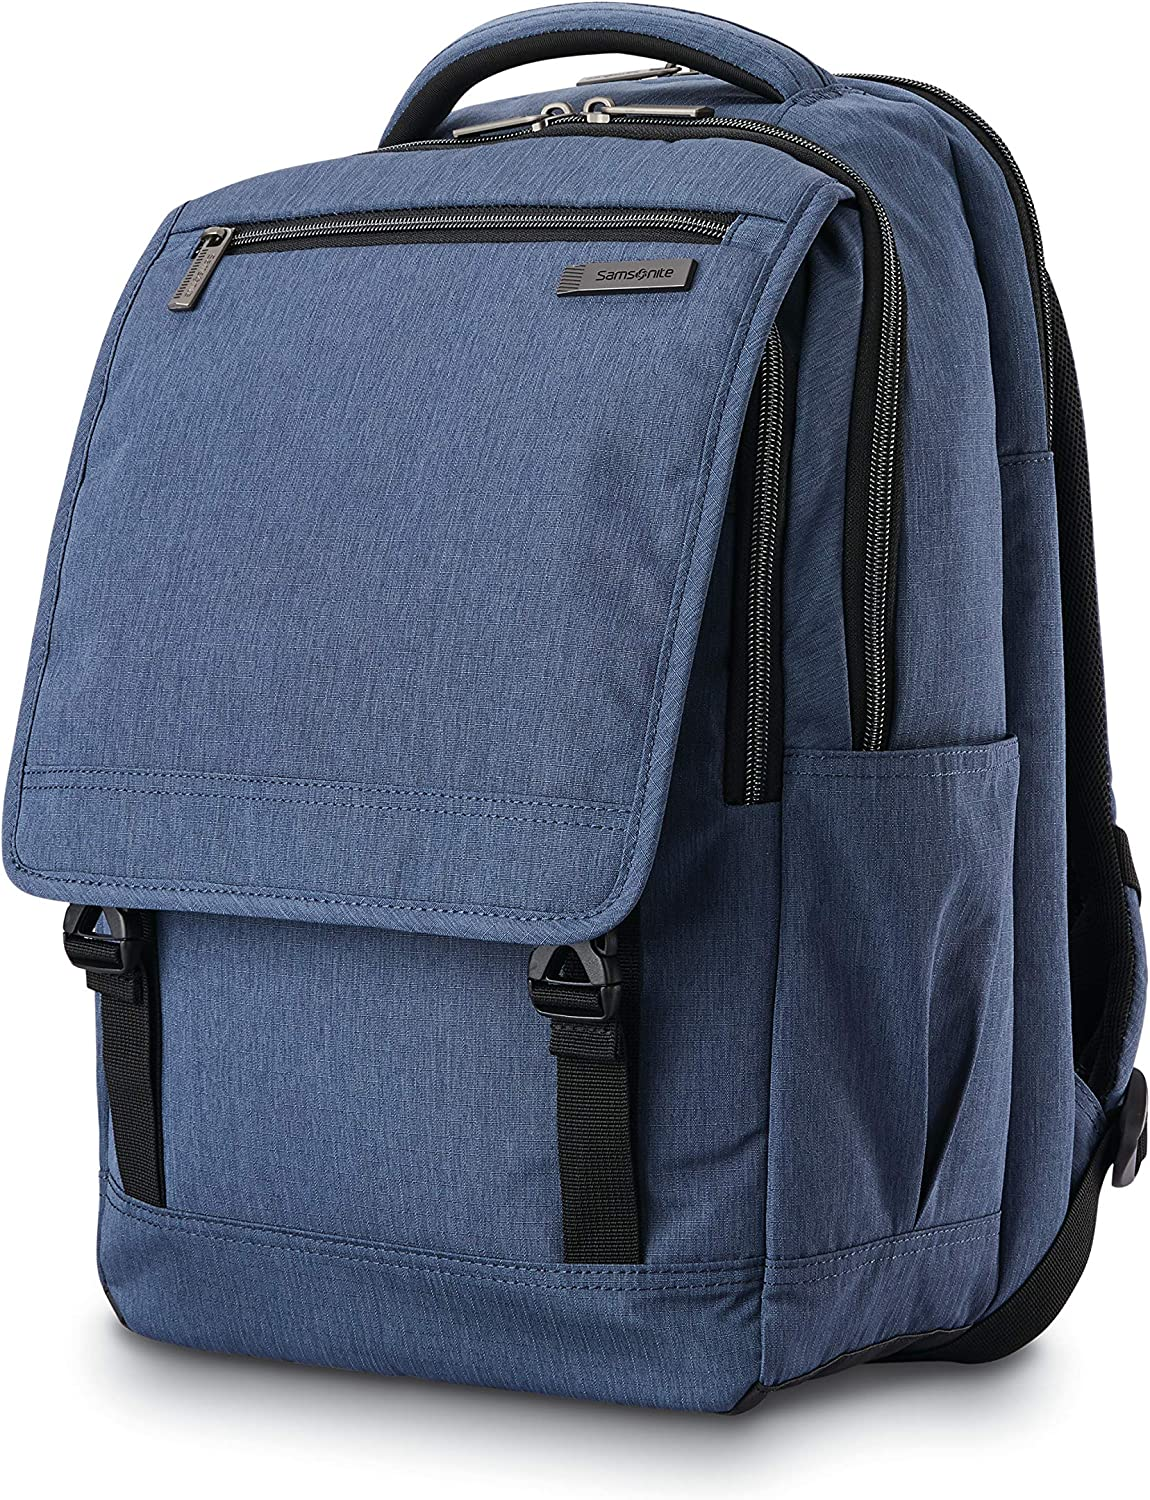 Samsonite Modern Utility Paracycle Laptop Backpack, Blue Chambray, One Size